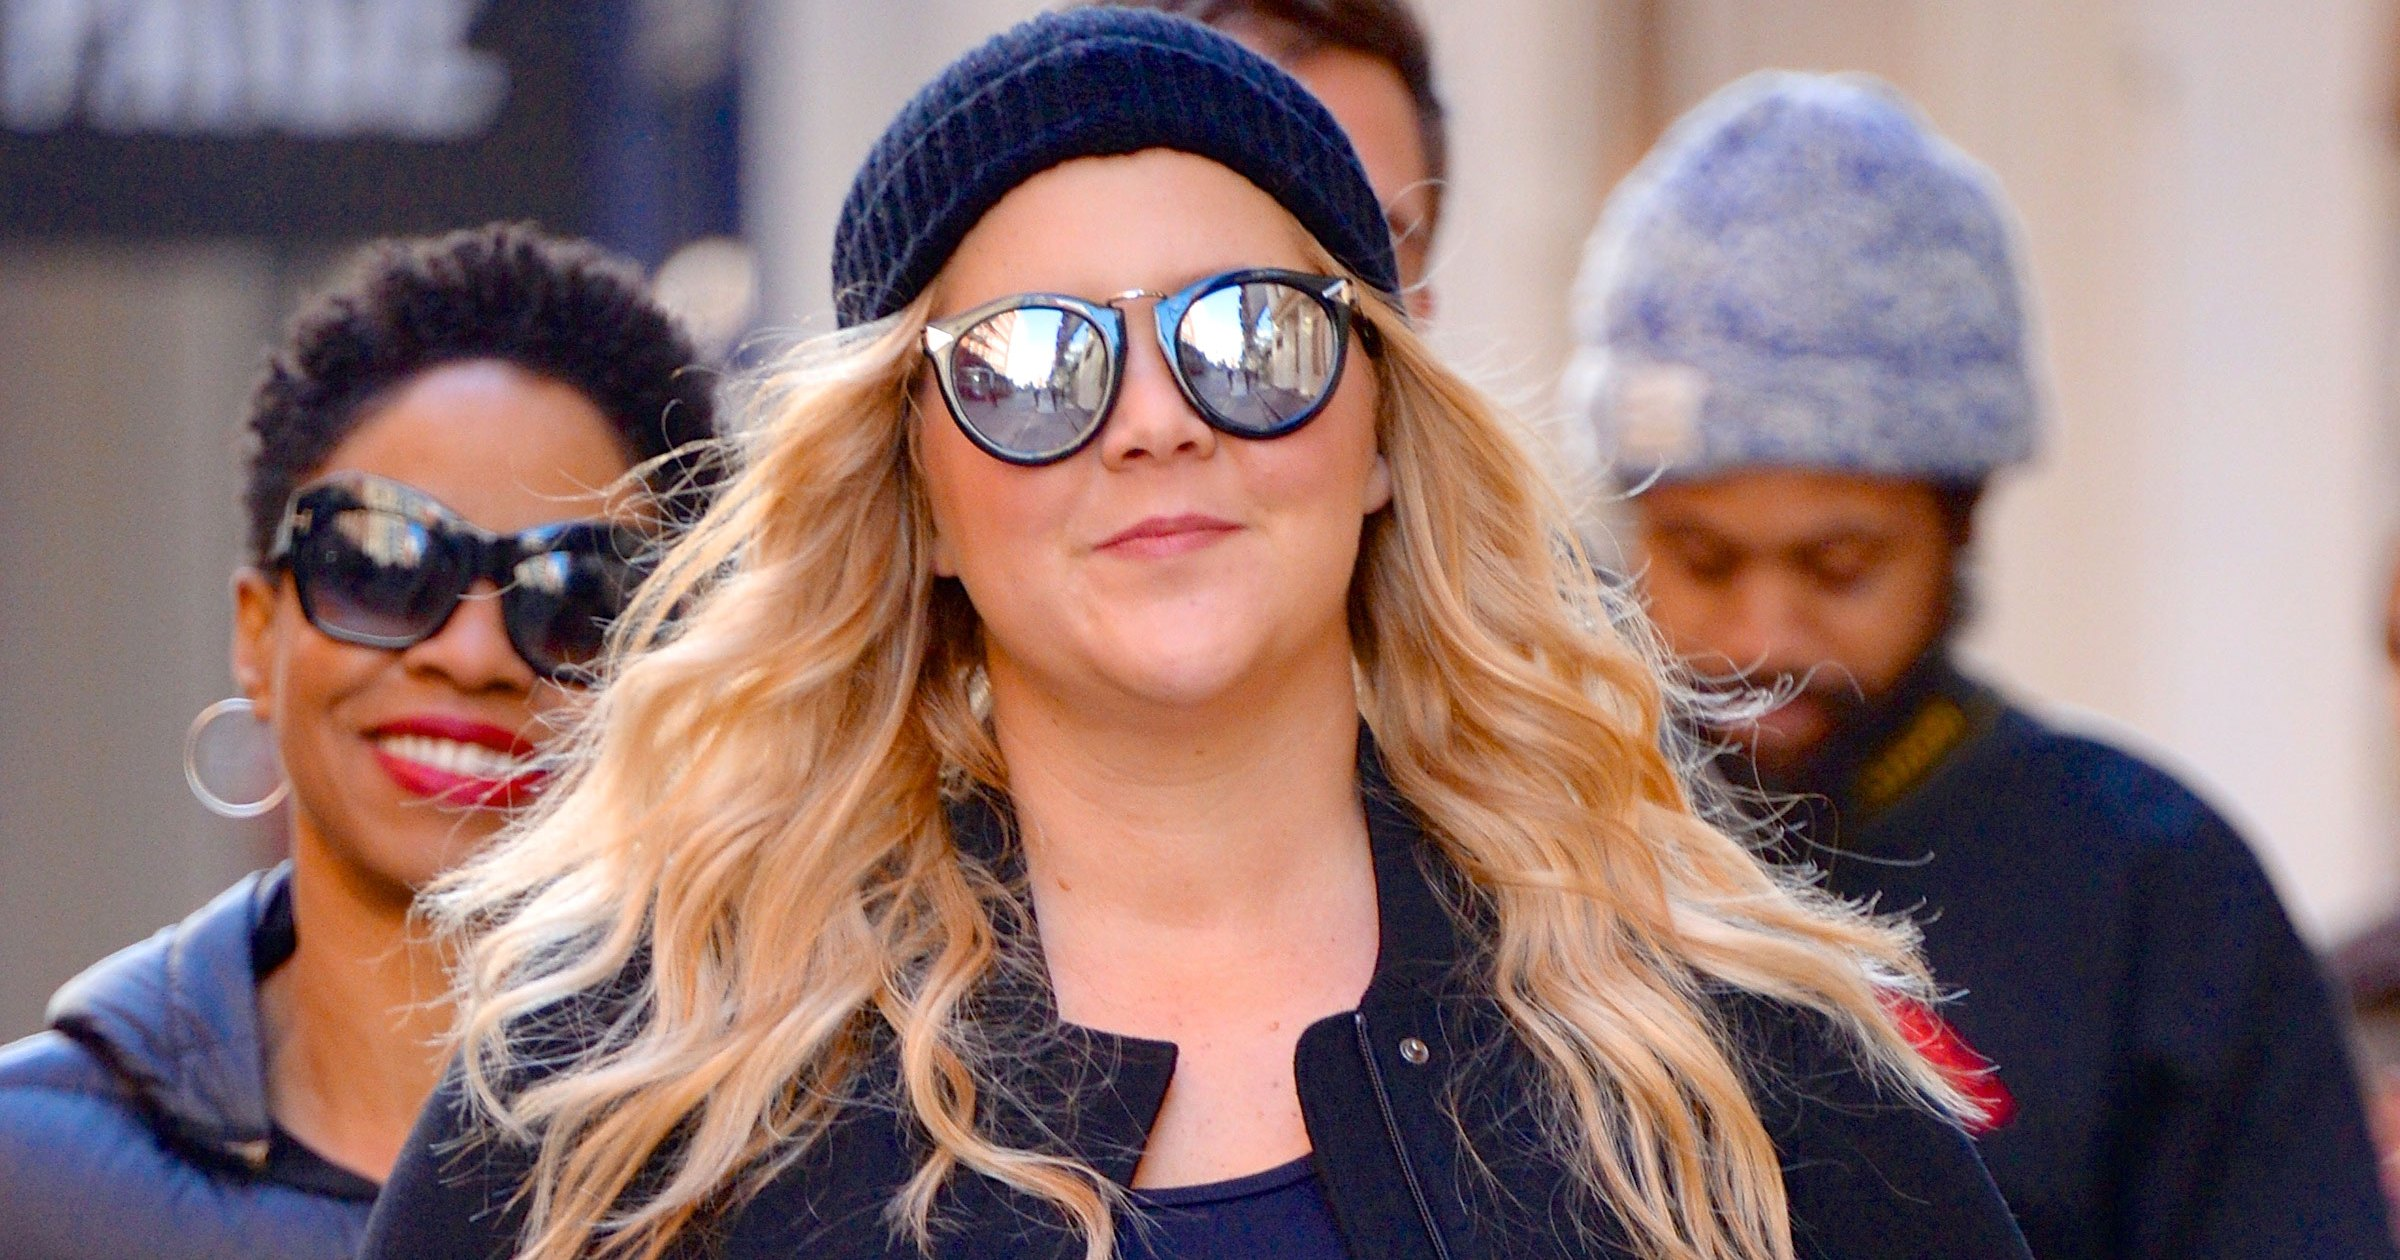 Pregnant Amy Schumer Vomits on the Way to Comedy Show